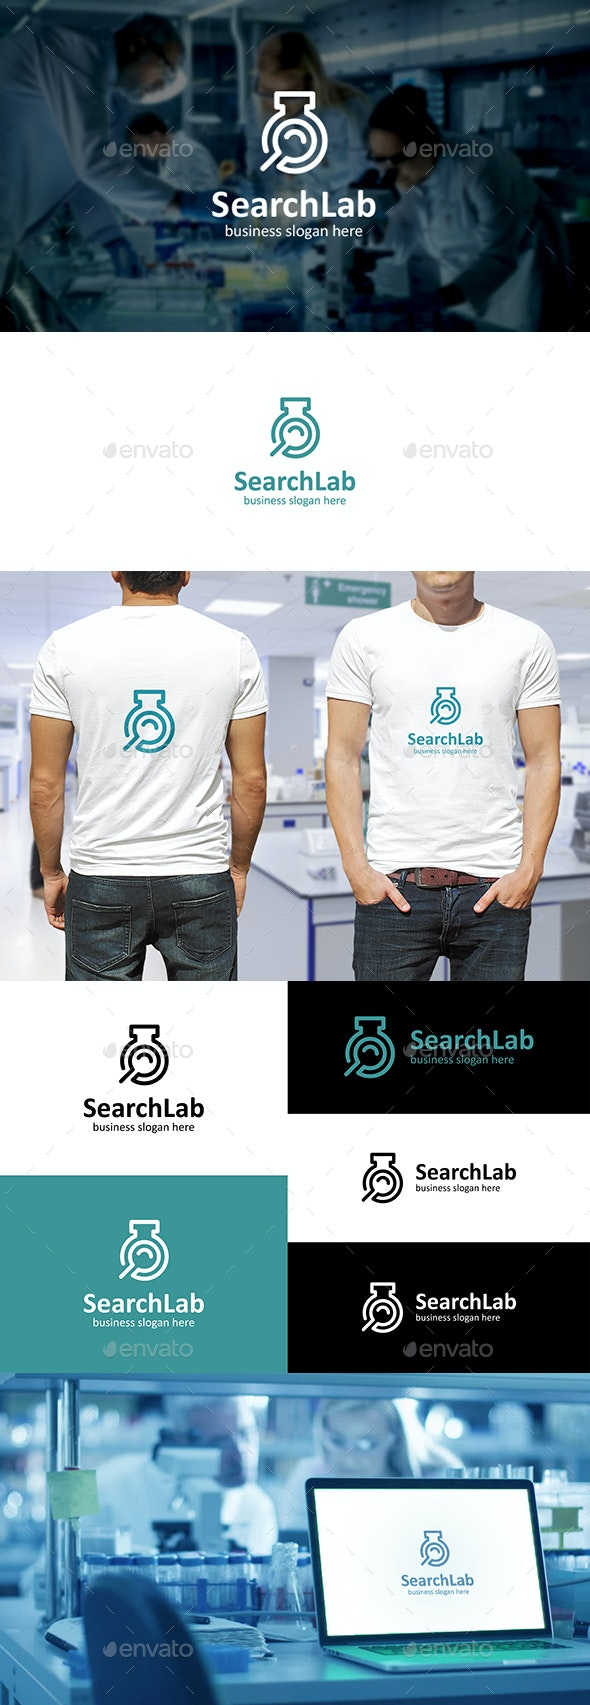 Search Lab Logo - Test Tube and Magnifying Glass Outline - Symbols Logo Templates